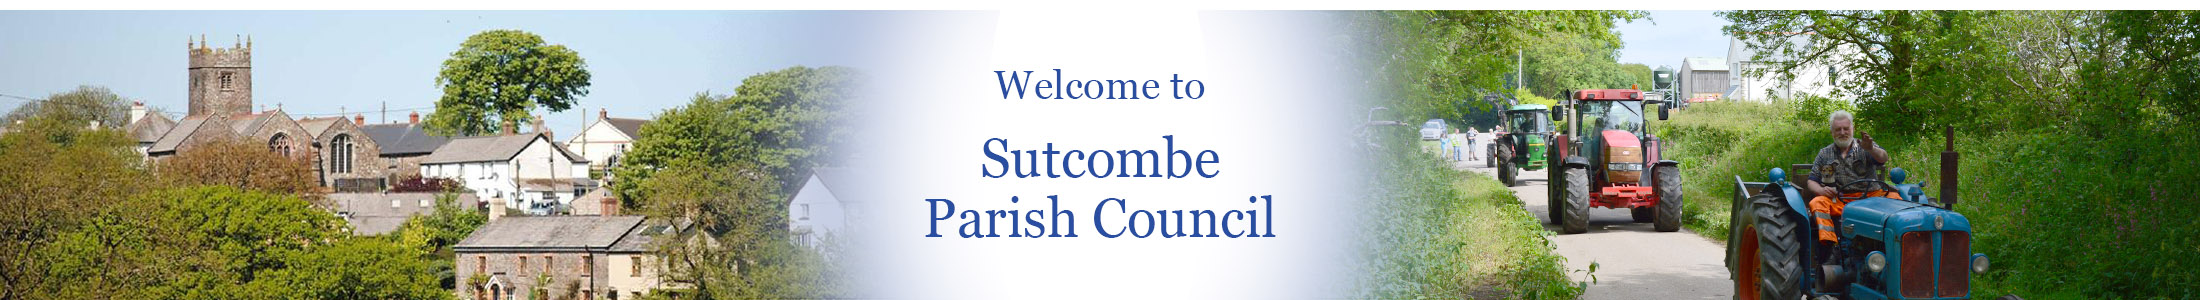 Header Image for Sutcombe Parish Council